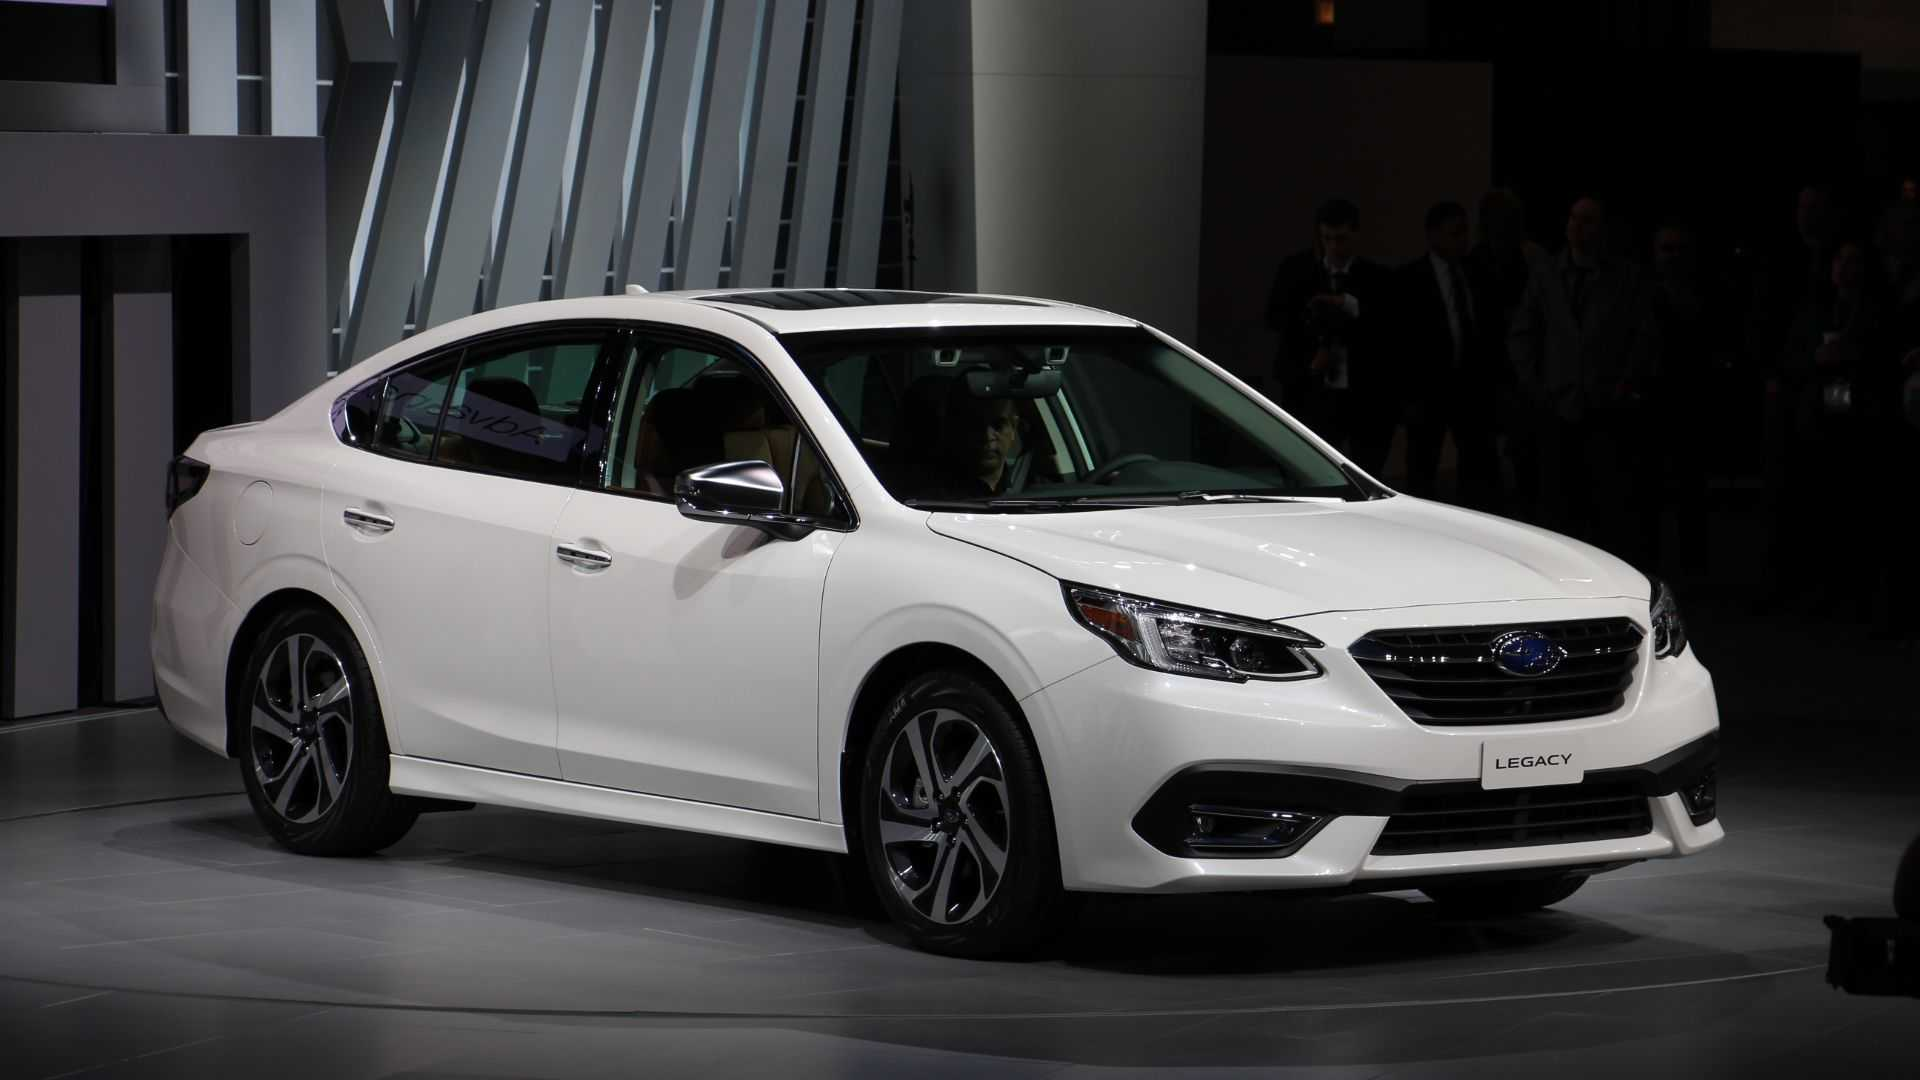 57 The Best 2020 Subaru Legacy Engine Spy Shoot